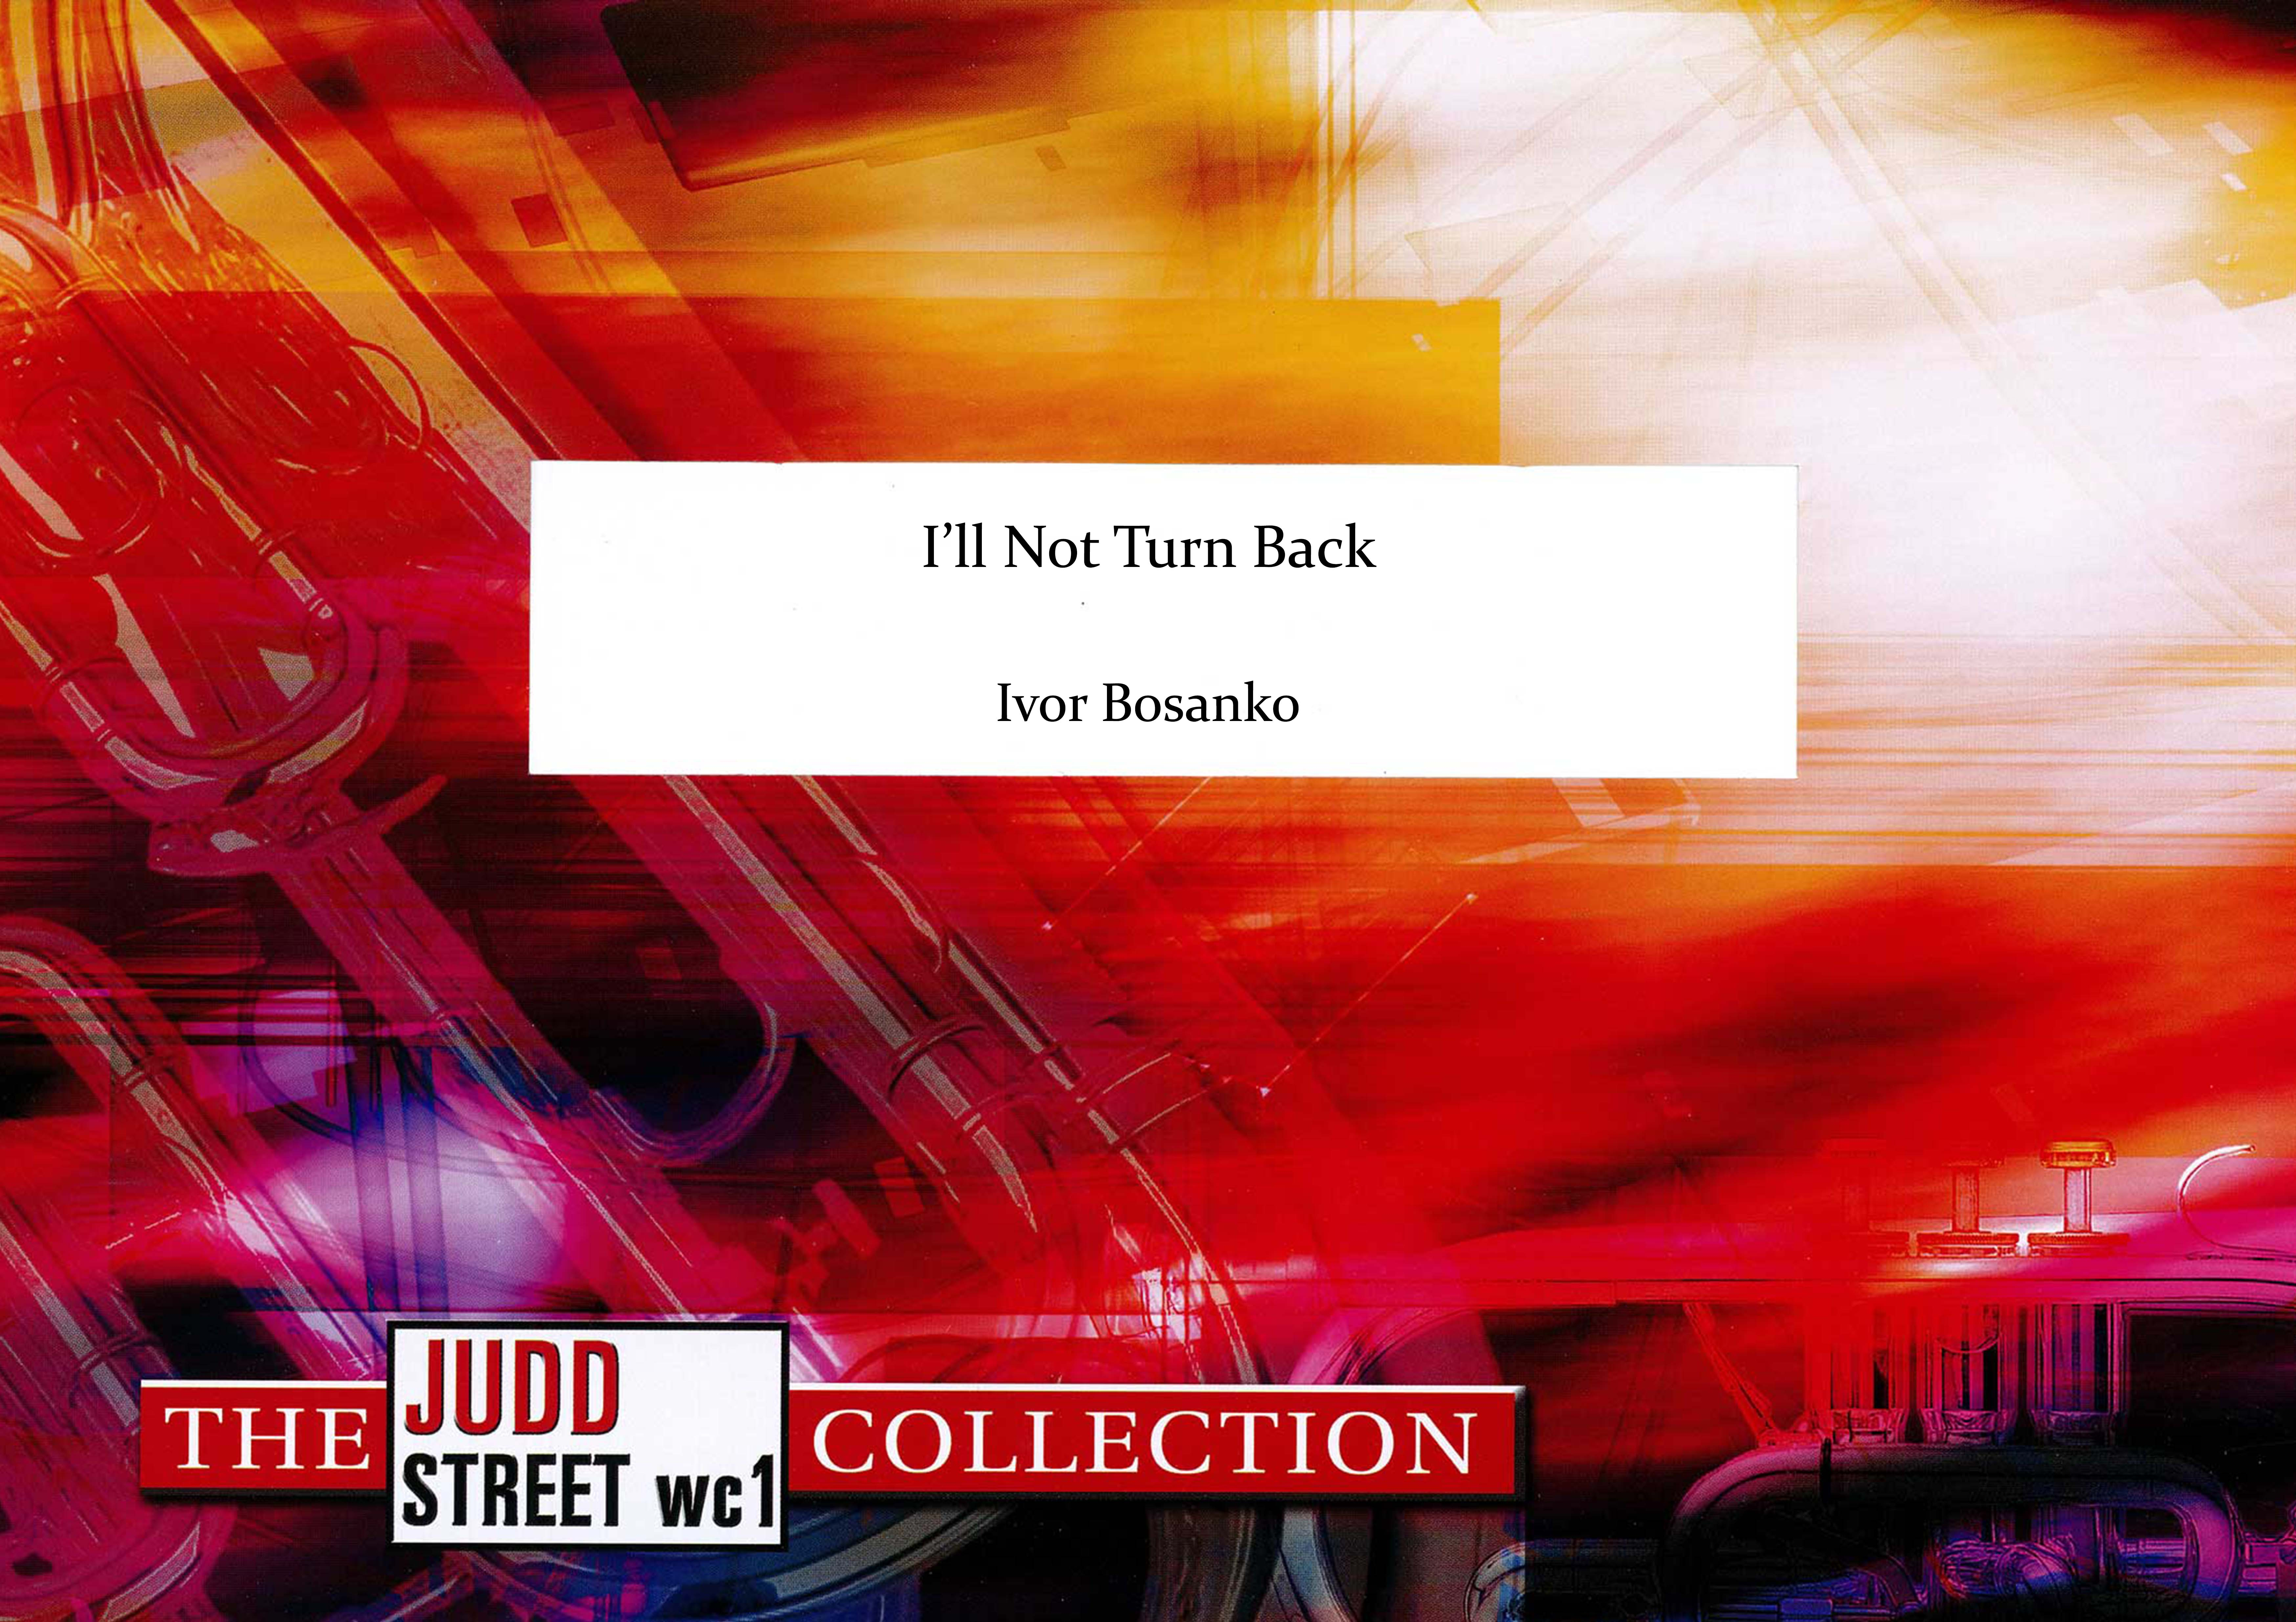 I'll Not Turn Back (Cornet and Euphonium Duet with Brass Band - Score only)